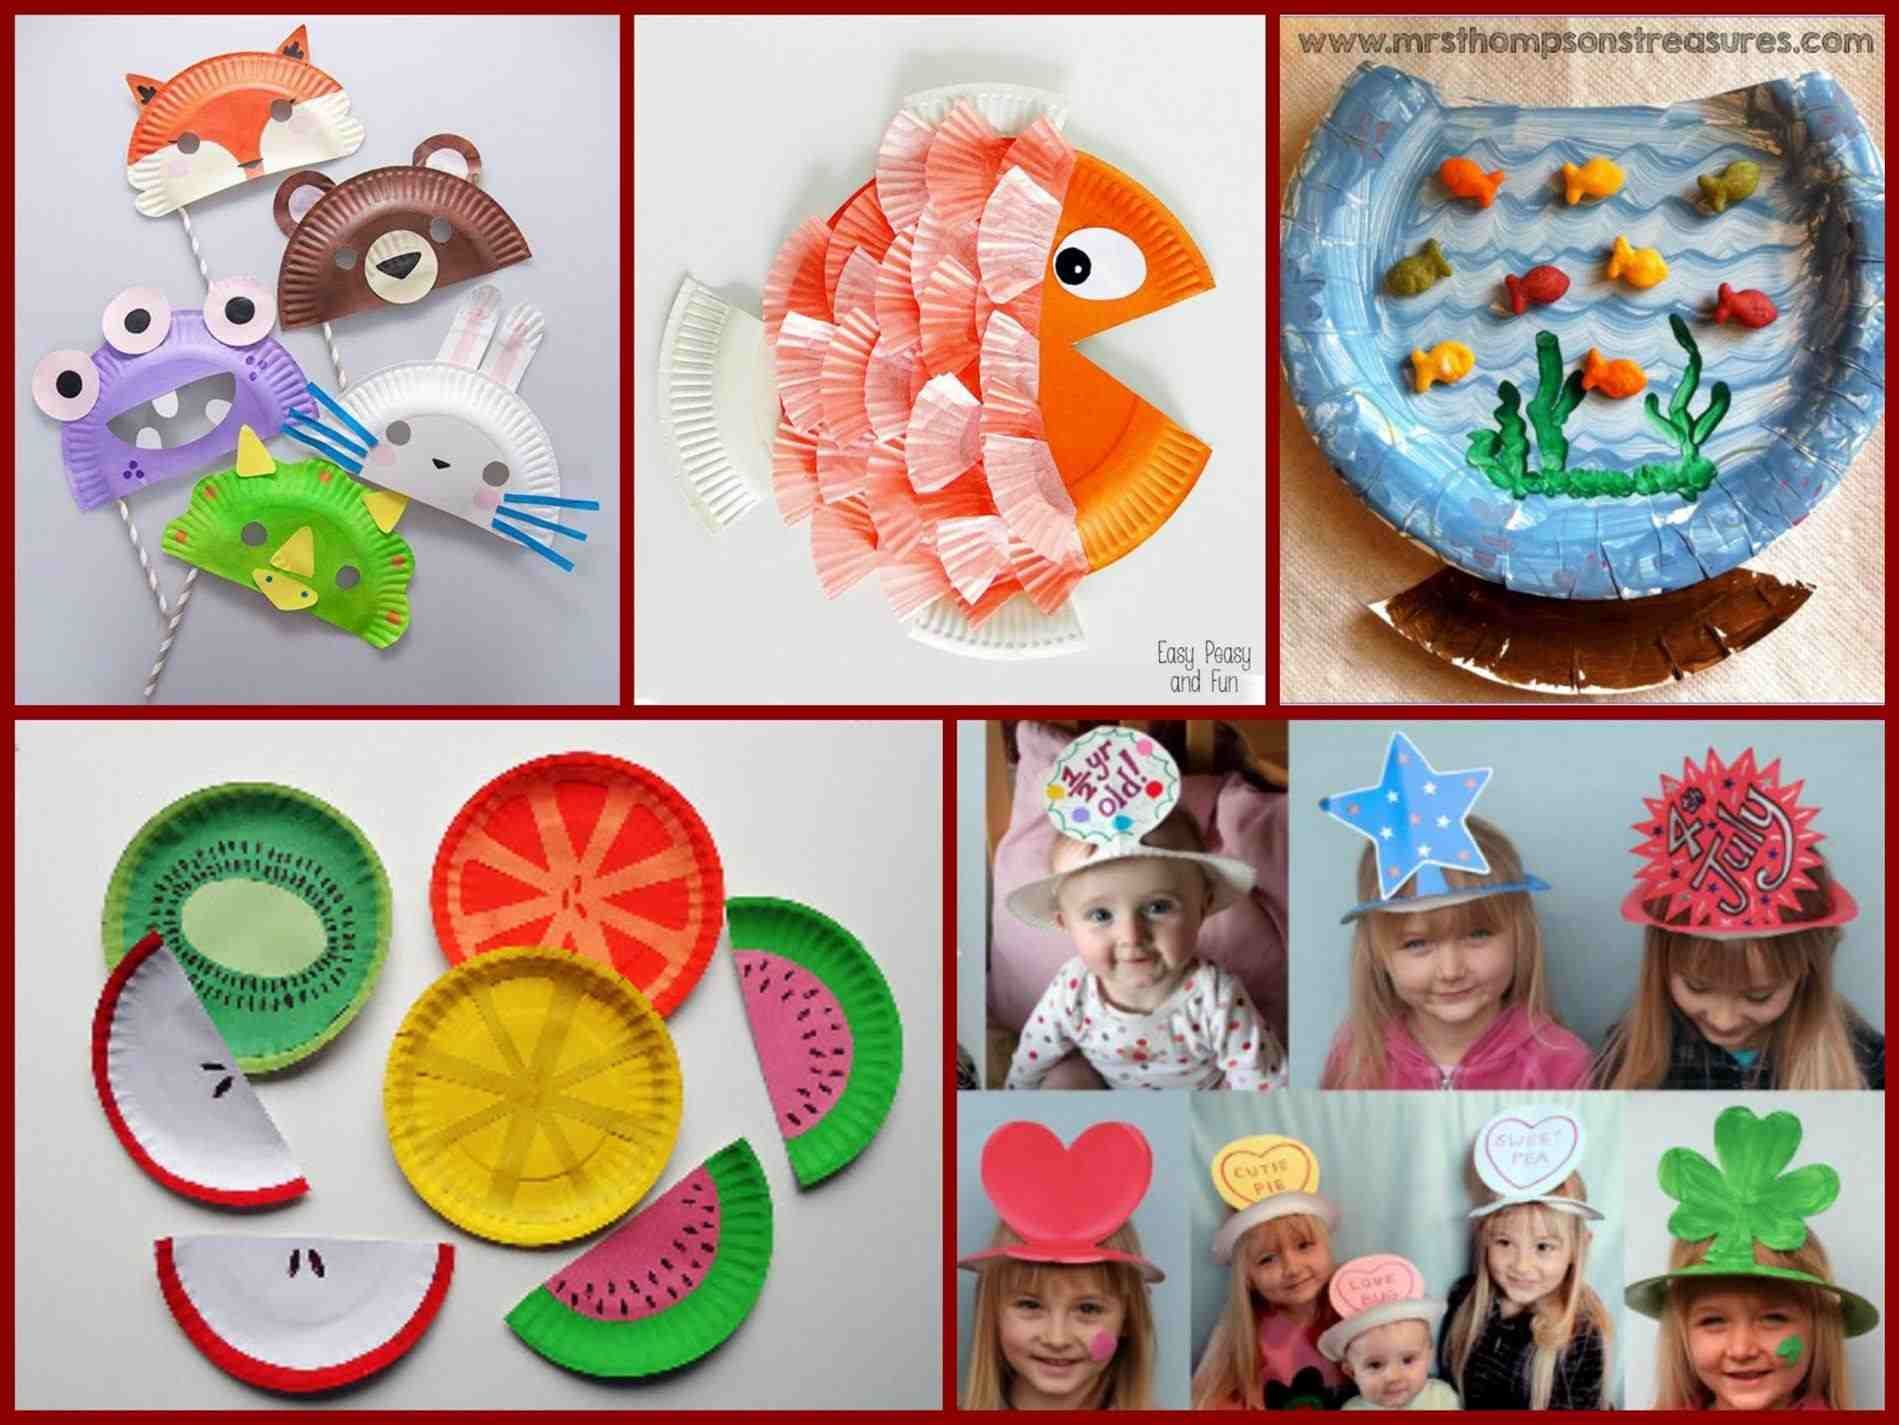 Arts And Crafts For Toddlers Ideas Reciclaje, Cumpleaños